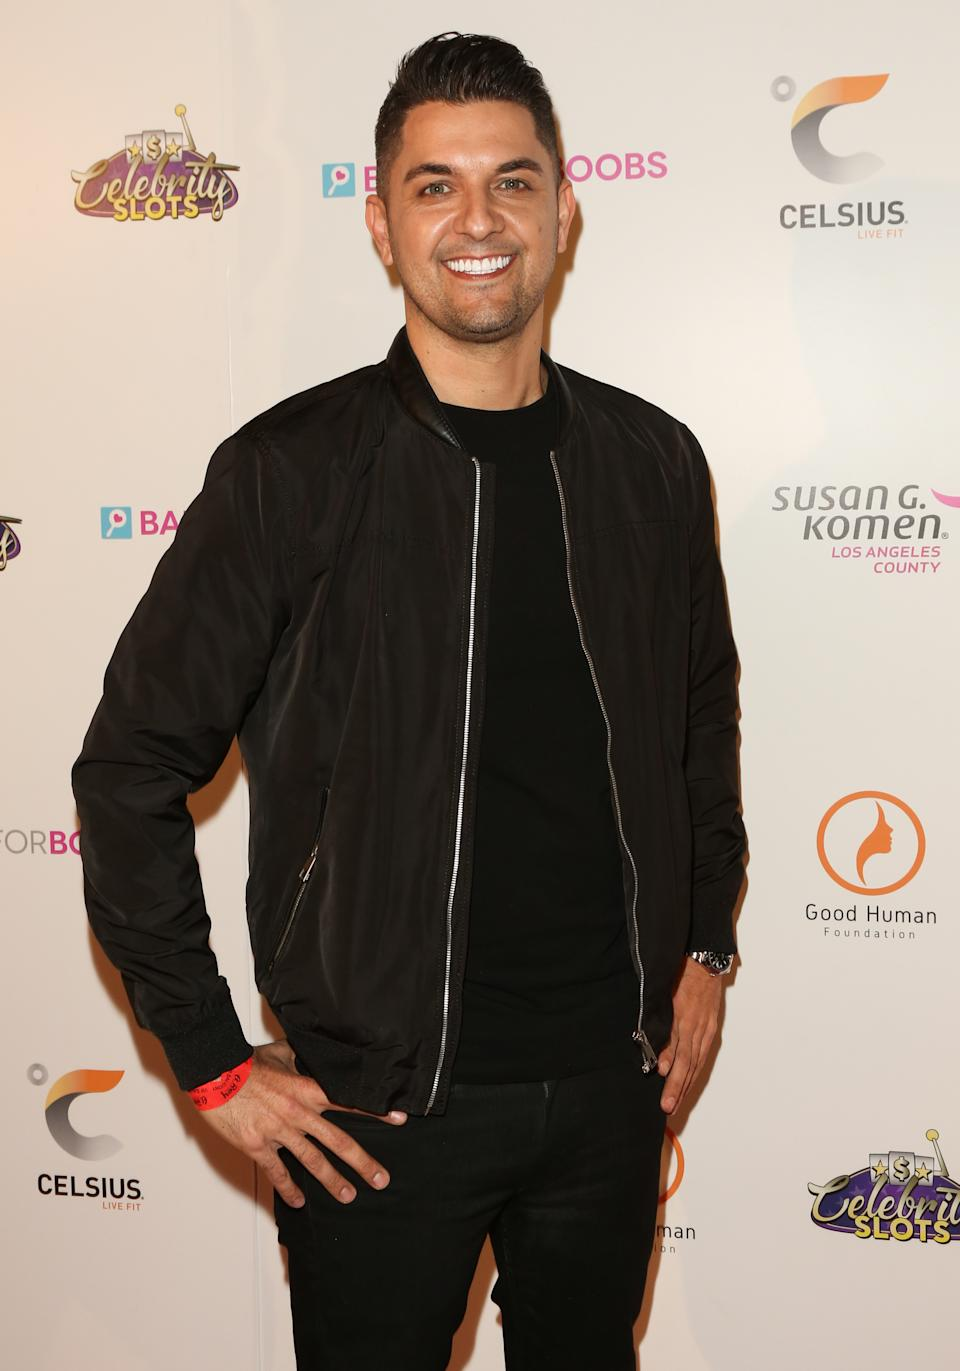 Reality TV Personality Nema Vand attends the 5th Annual Babes For Boobs live bachelor auction benefiting Susan G. Komen LA County at El Rey Theatre on December 05, 2019 in Los Angeles, California.